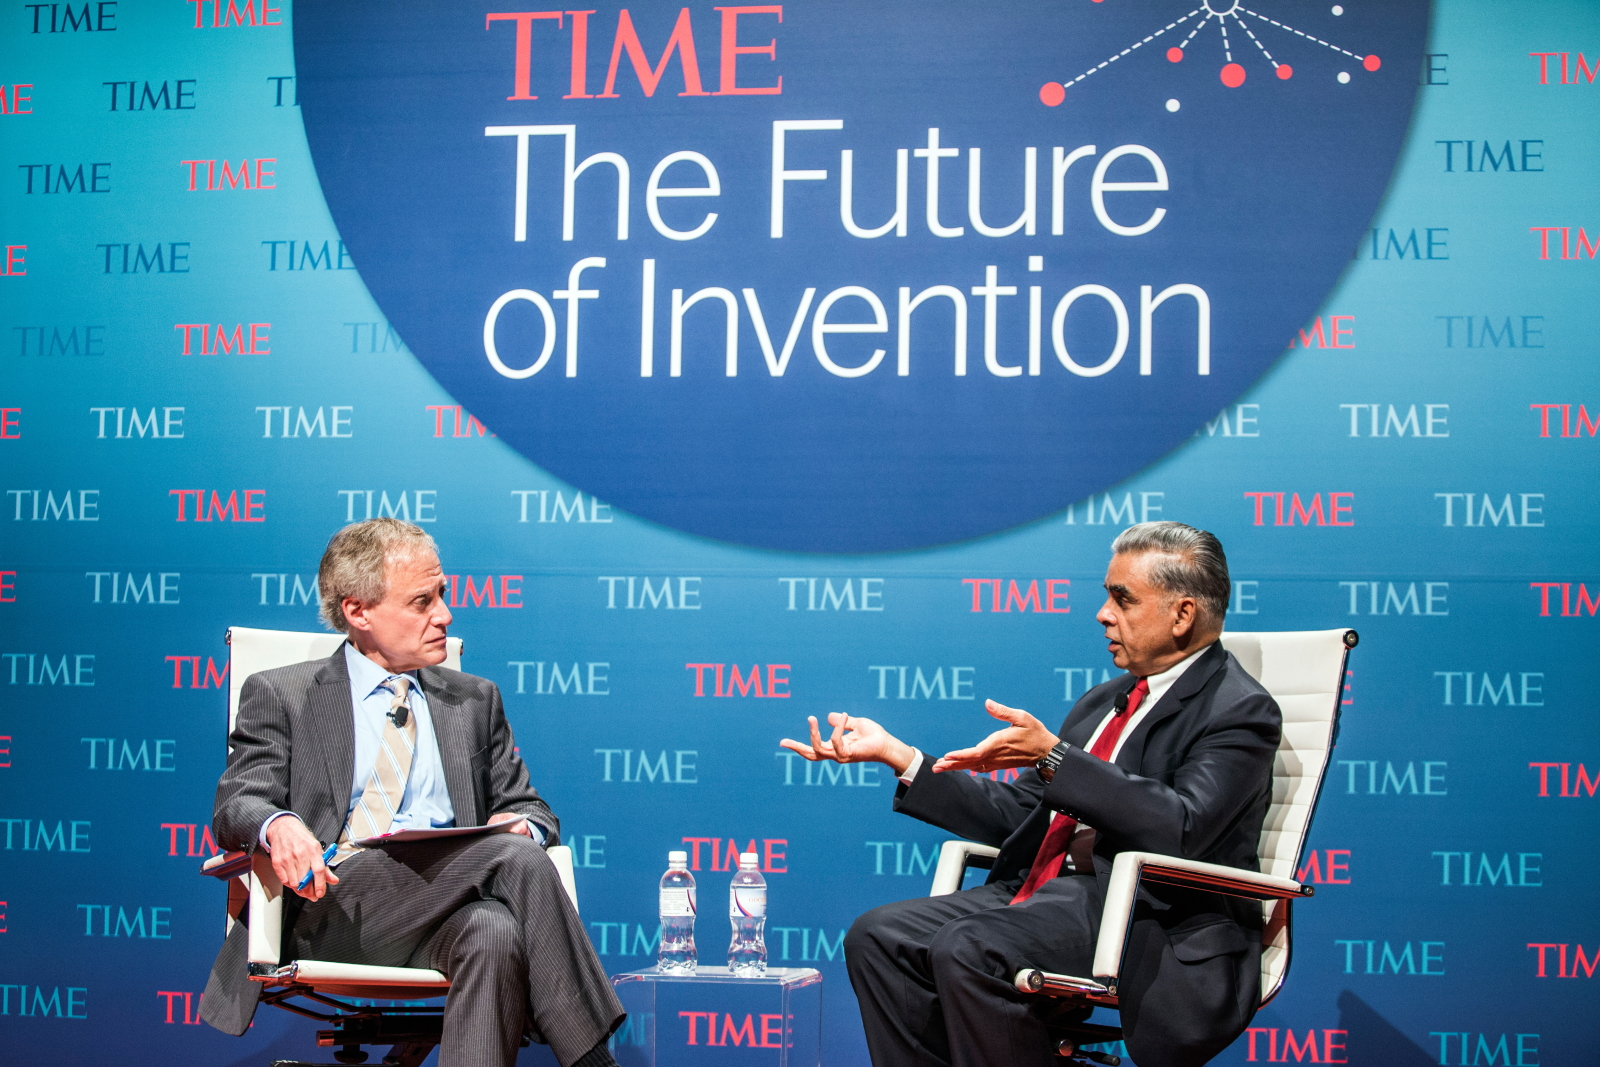 Jeffrey Kluger, Editor-at-Large, TIME (l) and Kishore Mahbubani, Dean of the Lee Kuan Yew School of Public Policy, National University of Singapore